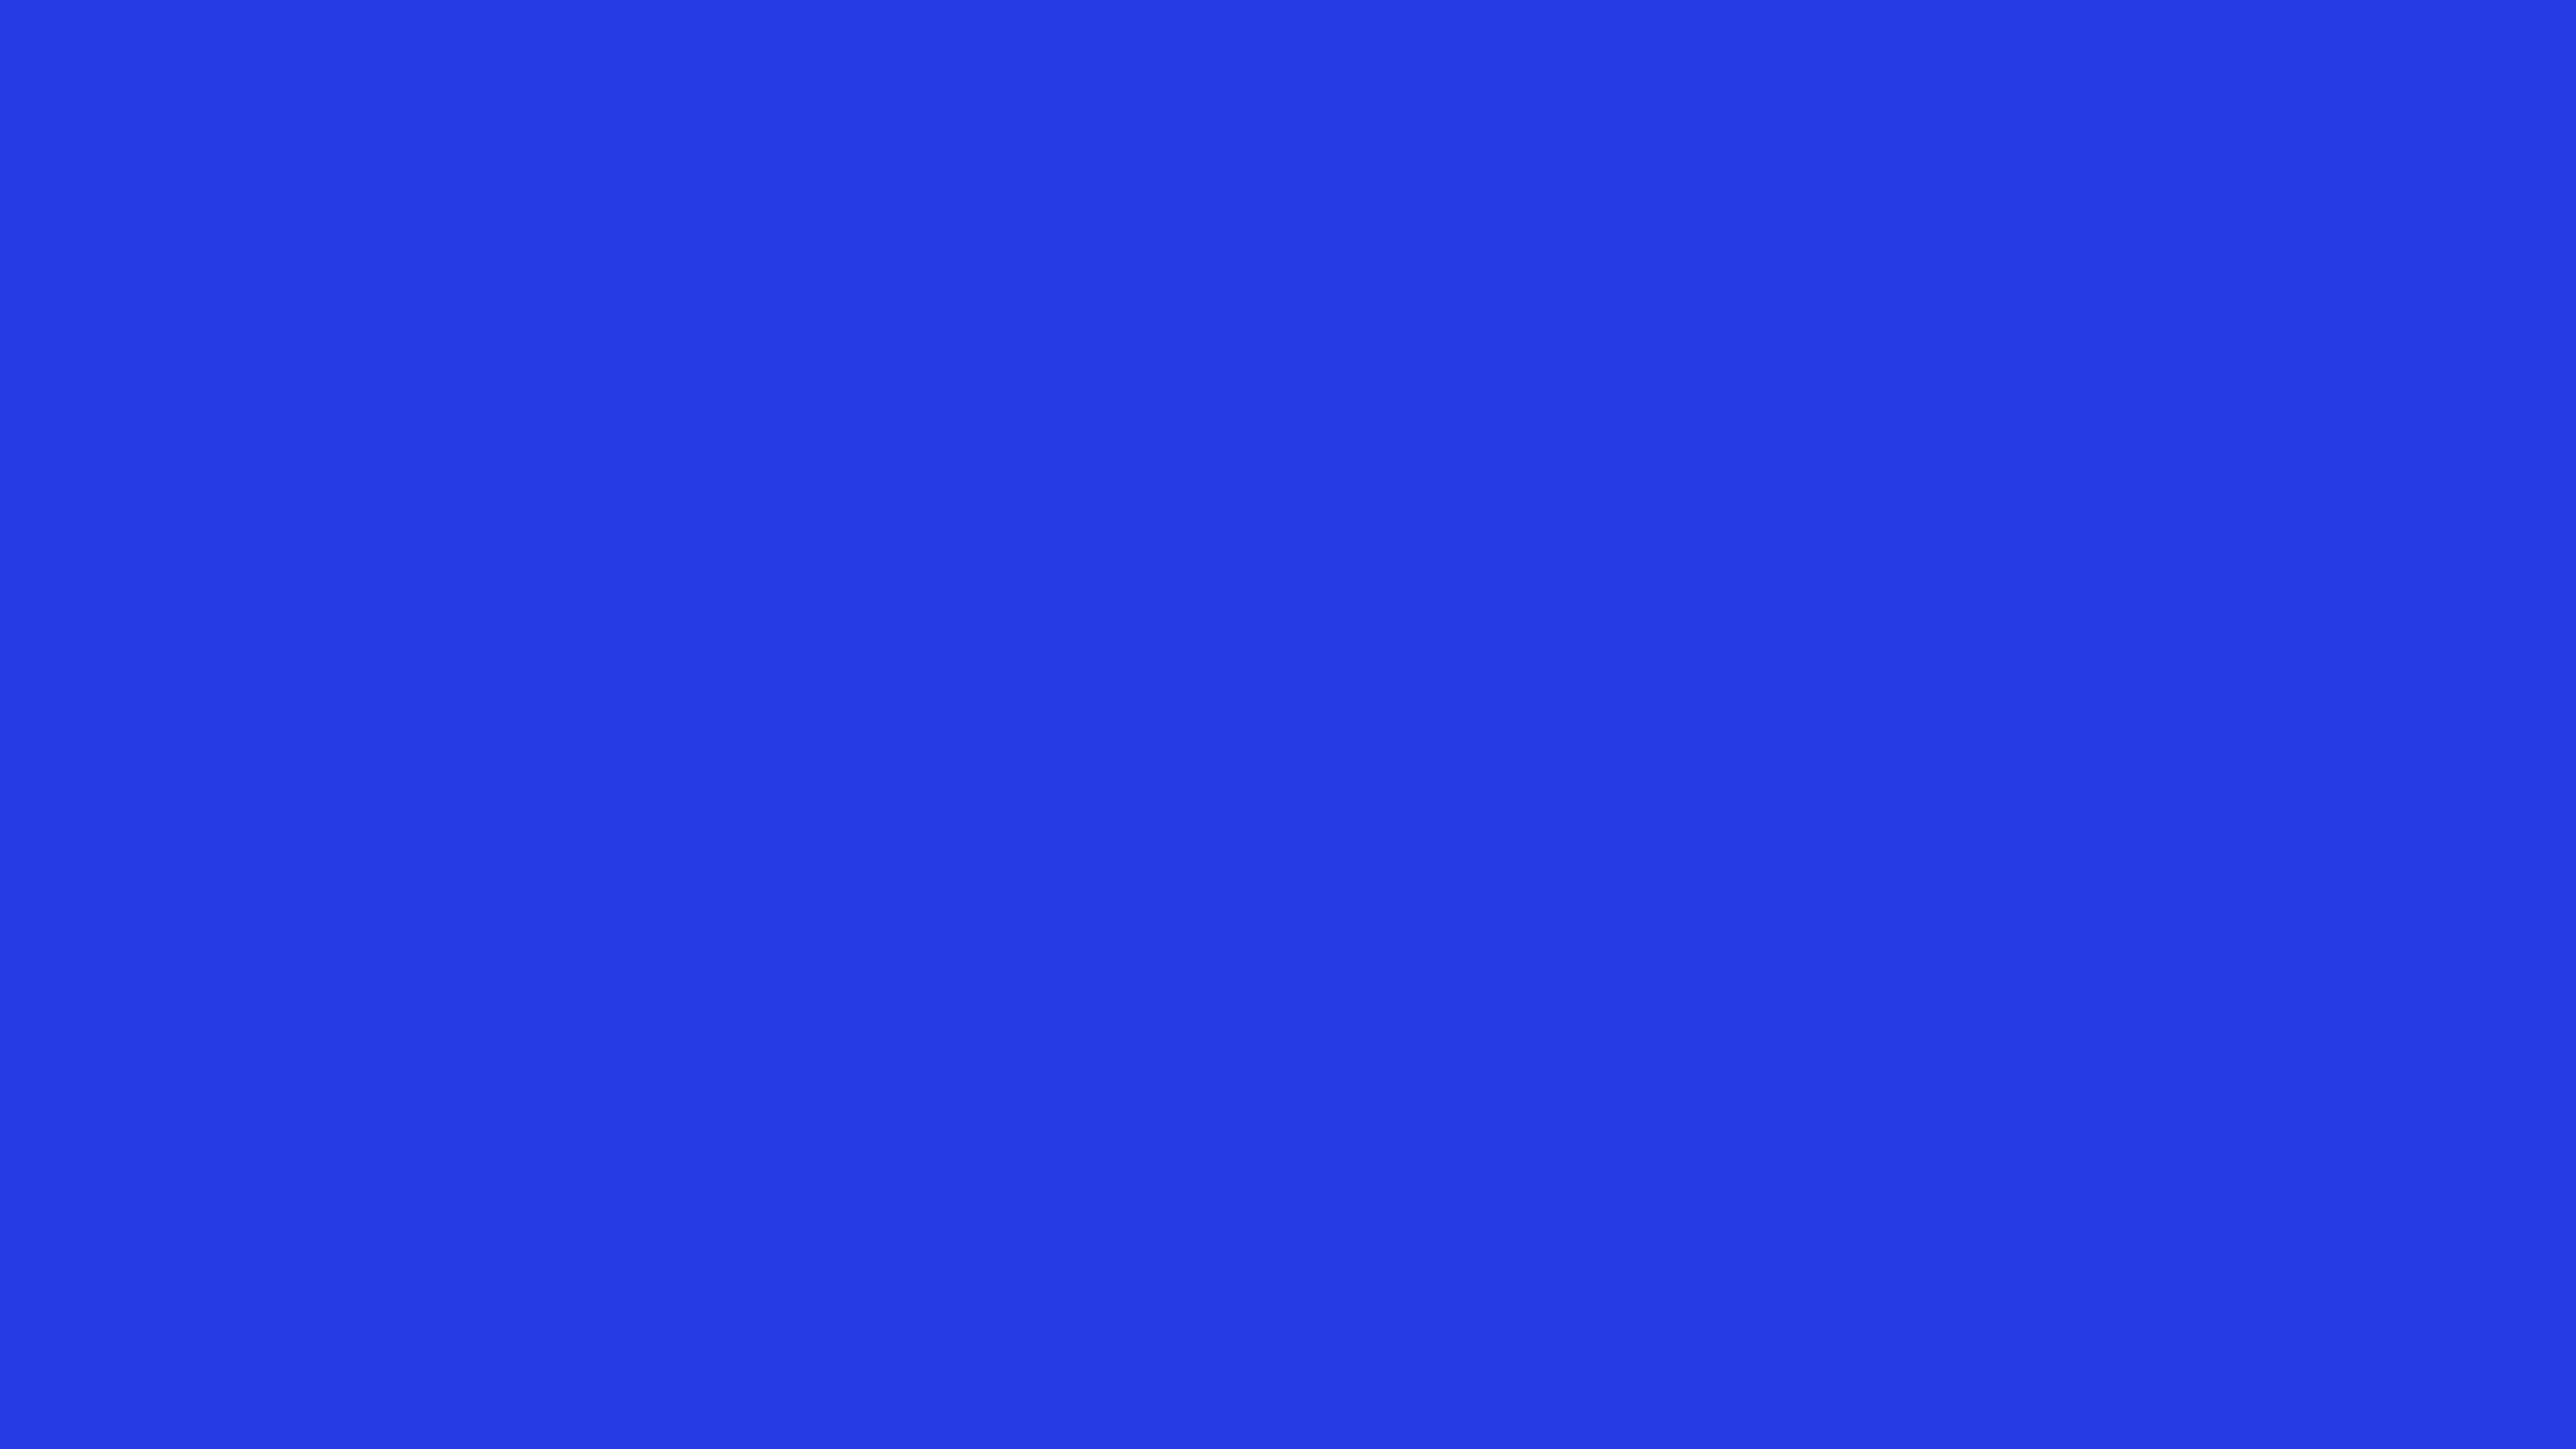 4096x2304 Palatinate Blue Solid Color Background